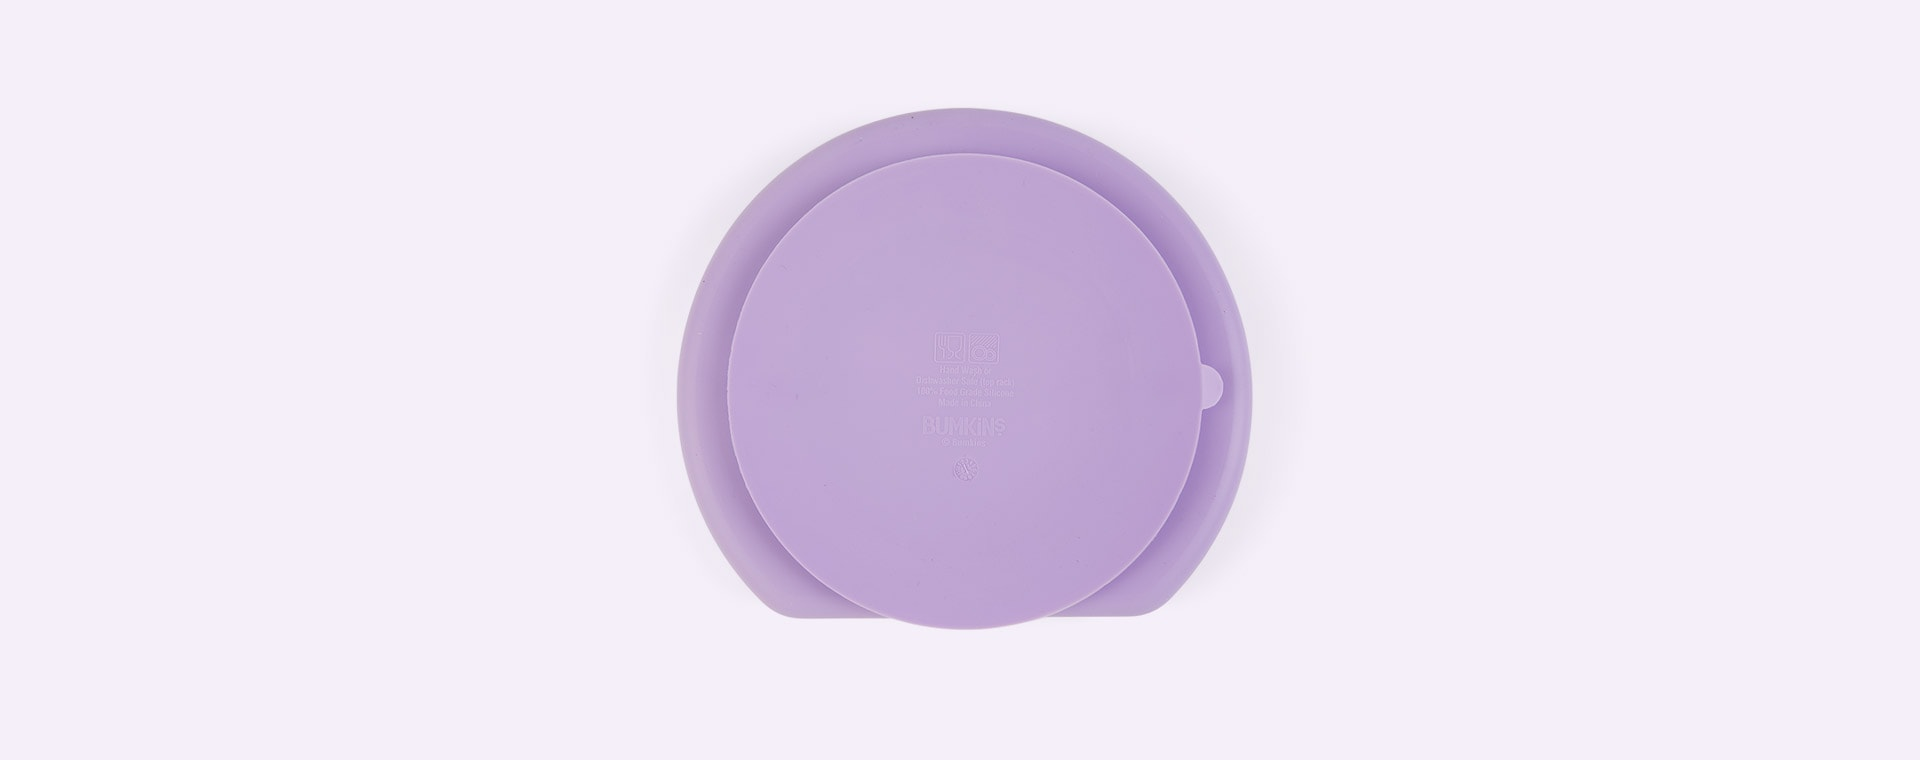 Lavender Bumkins Silicone Suction Grip Dish